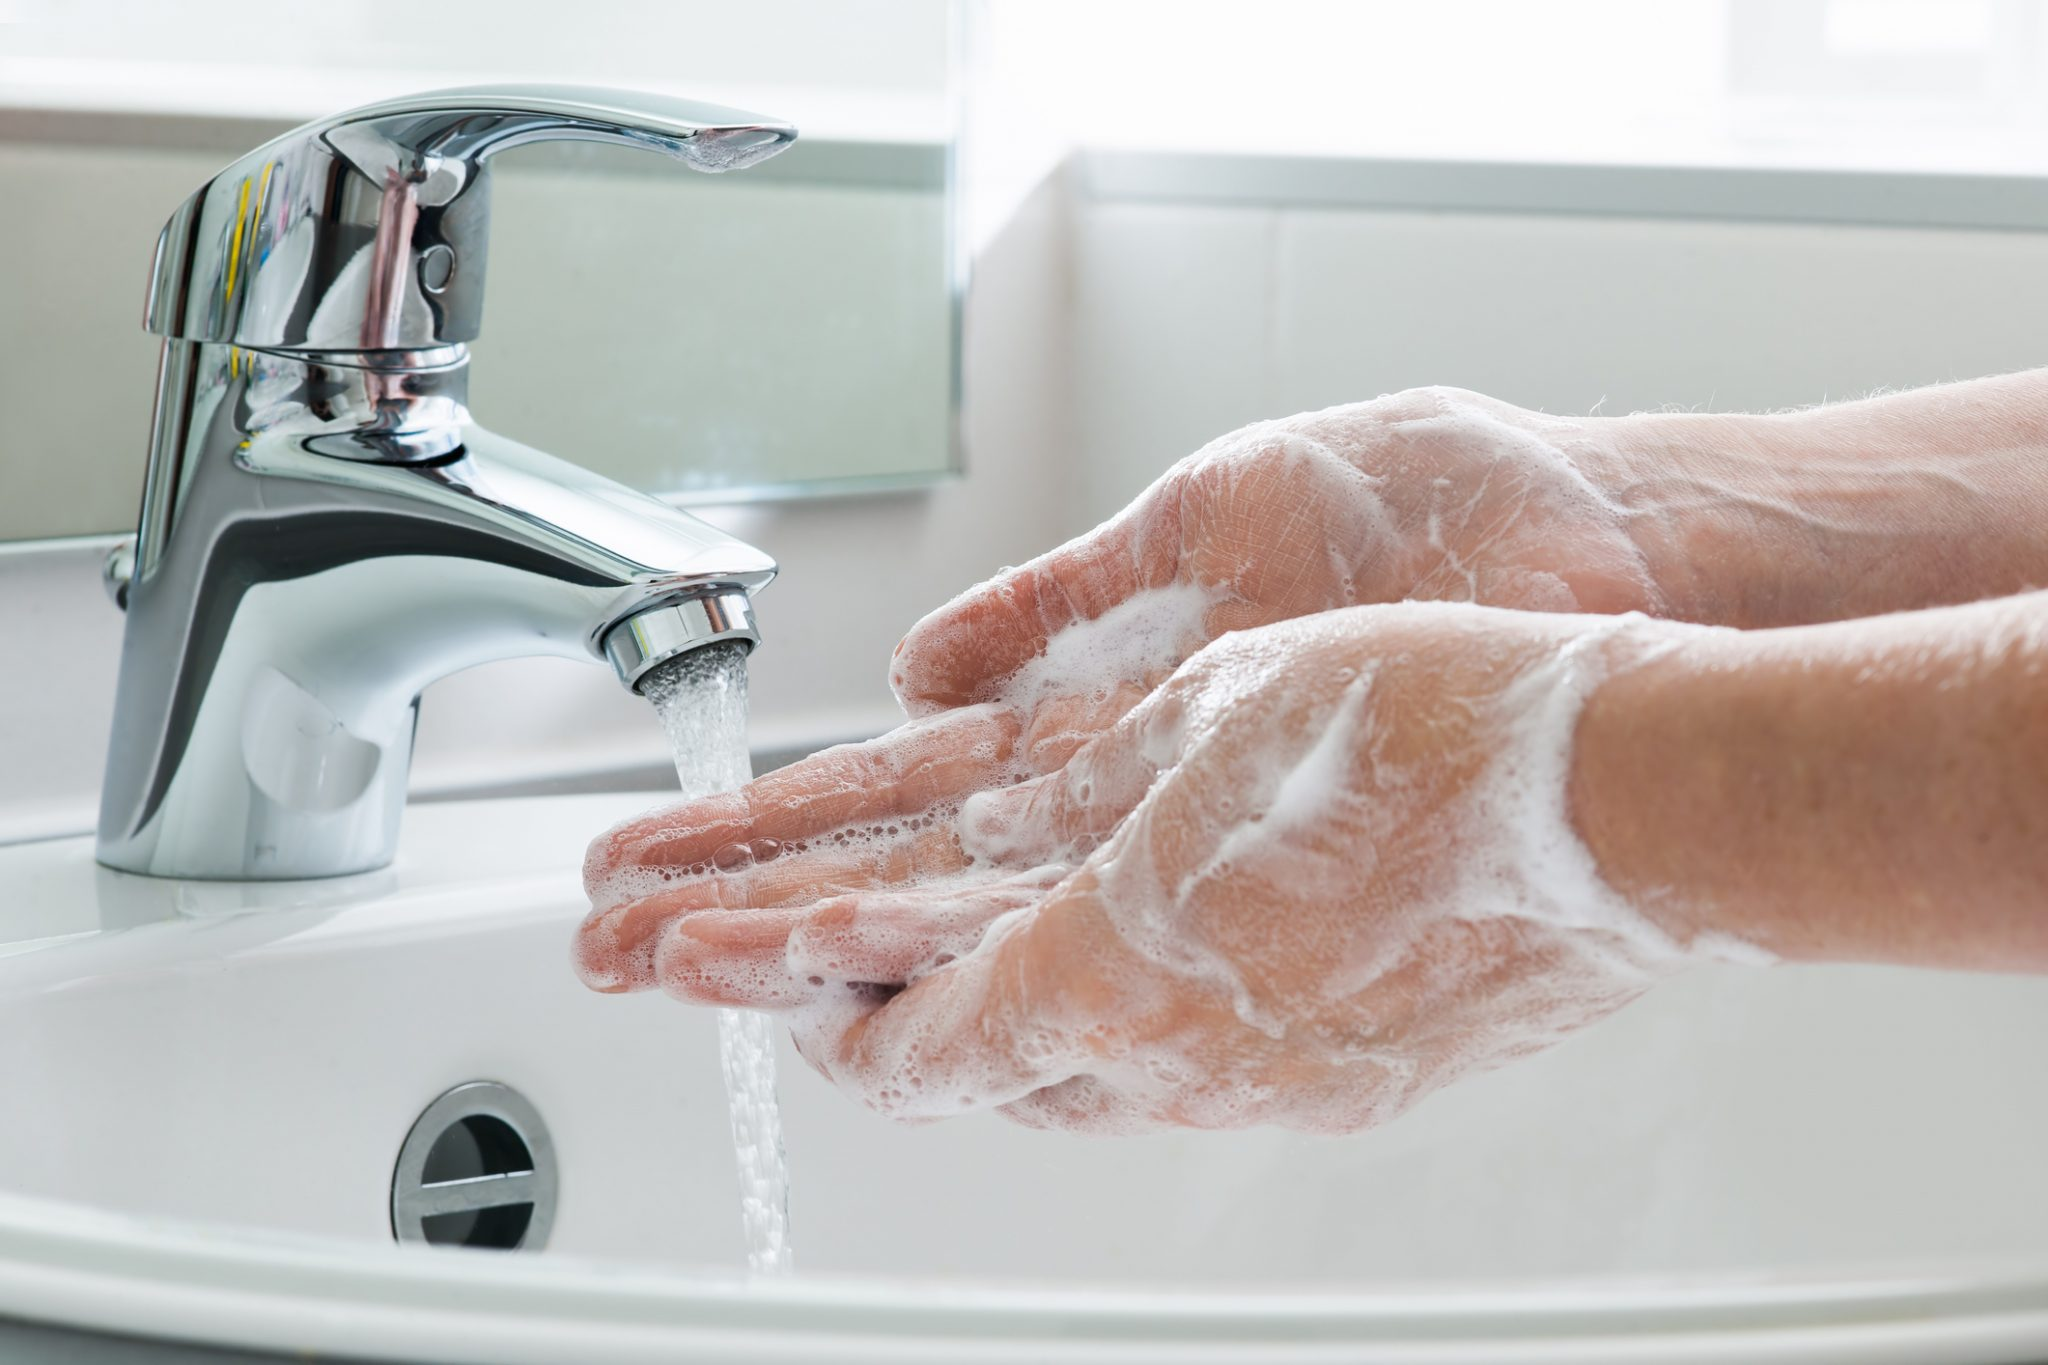 5 Of The Dirtiest Things You Touch Every Day